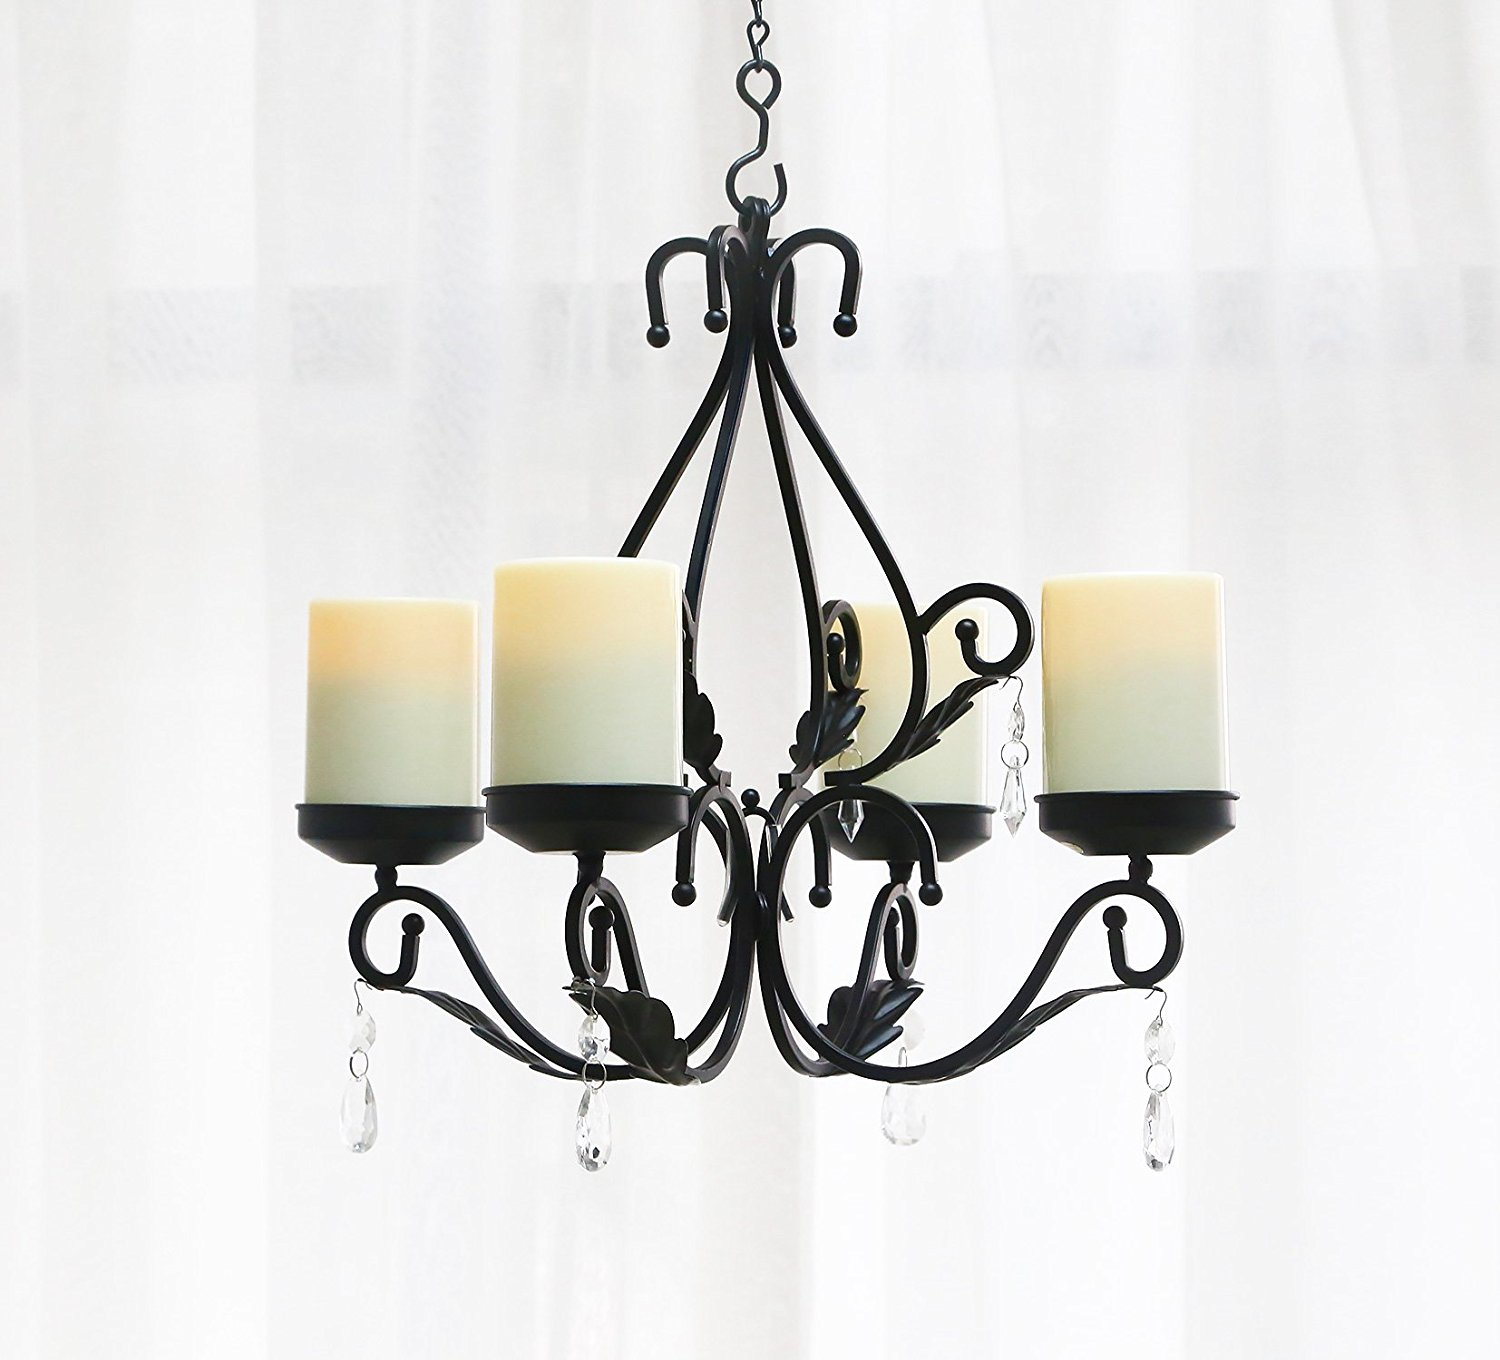 Giveu 3 In 1 Lighting Chandelier Metal Wall Sconce Set Of 2 Table Centerpiece For Indoor Or Outdoor Chain And Candles Included Black Home Decoration Shop